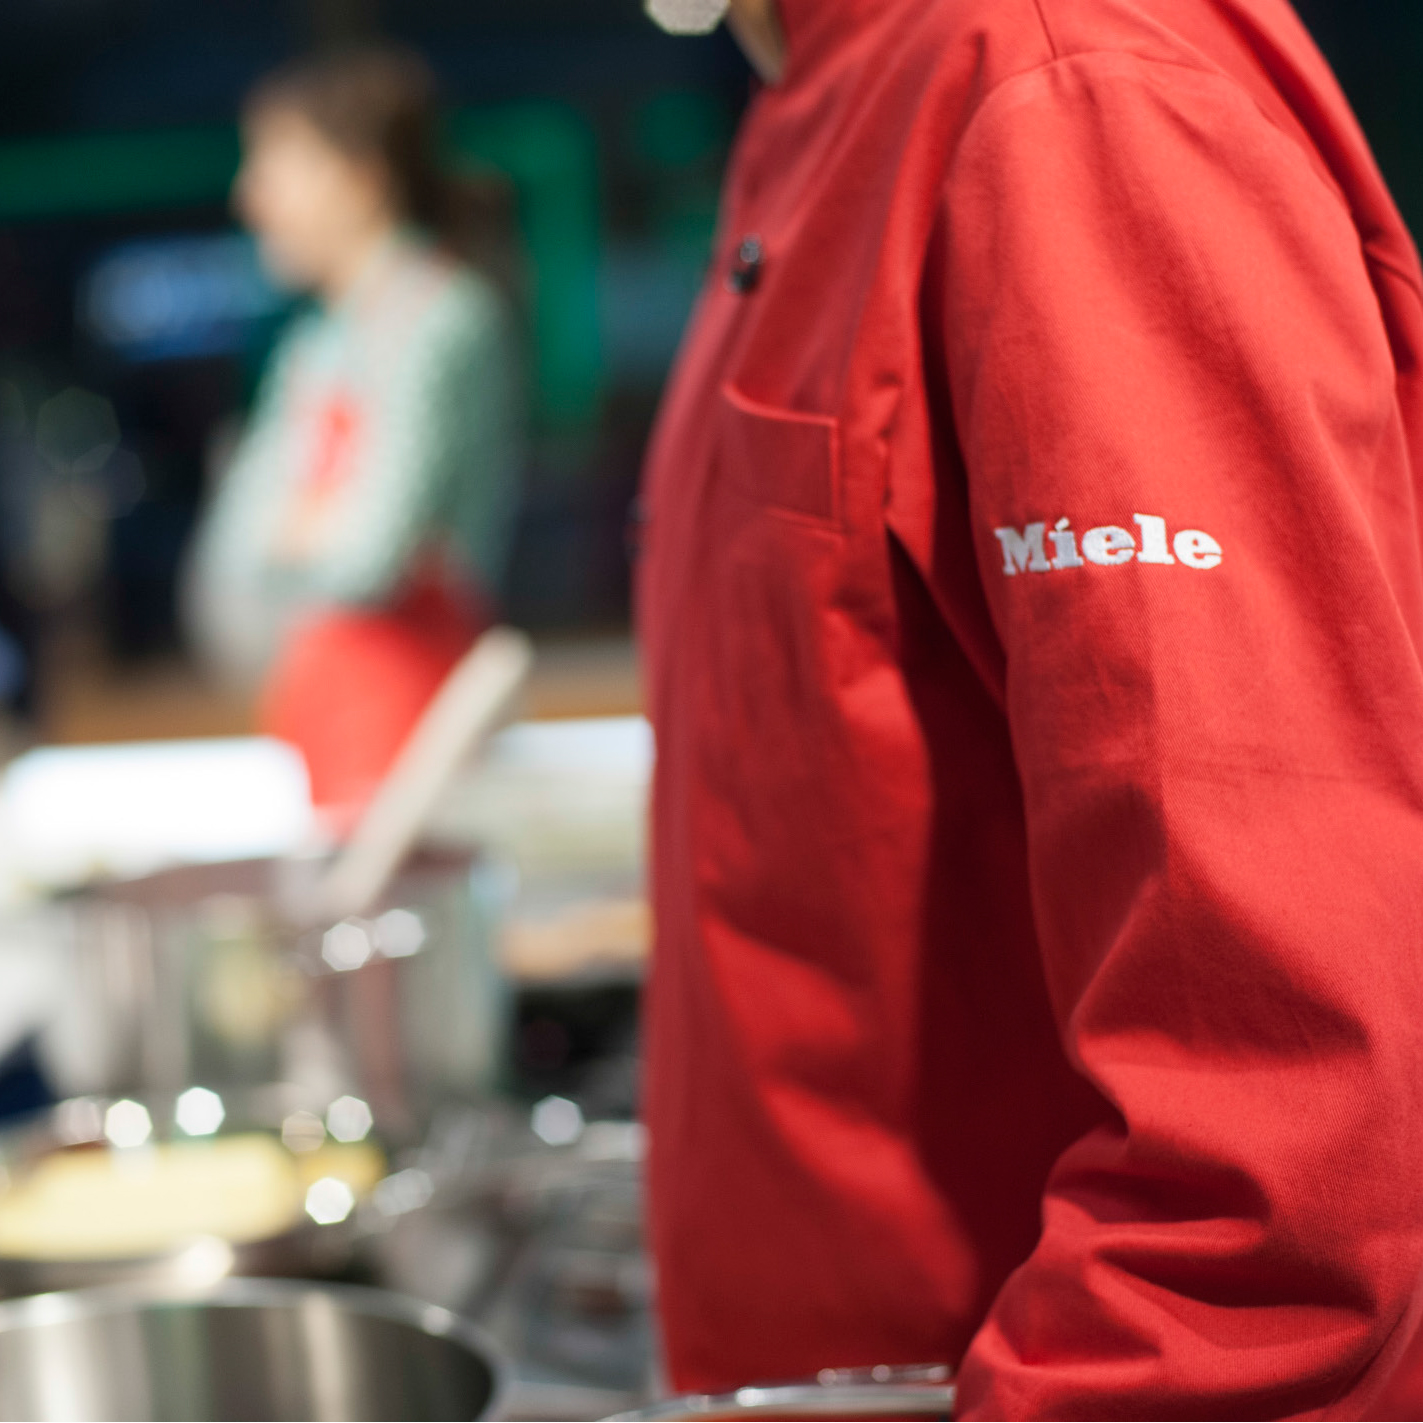 Miele: Better Living